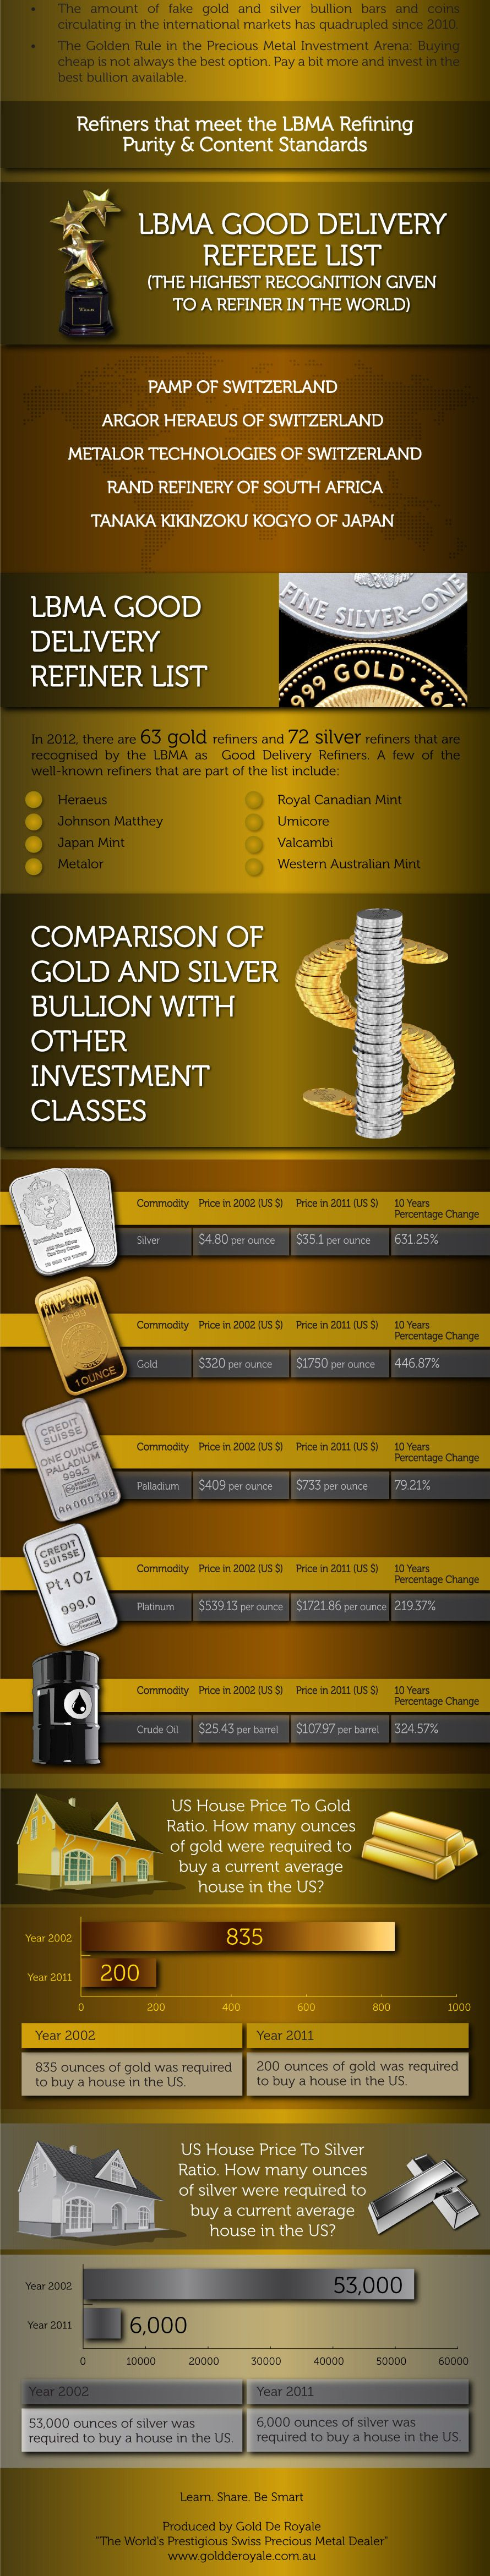 How to buy and invest in gold and silver bullion secure